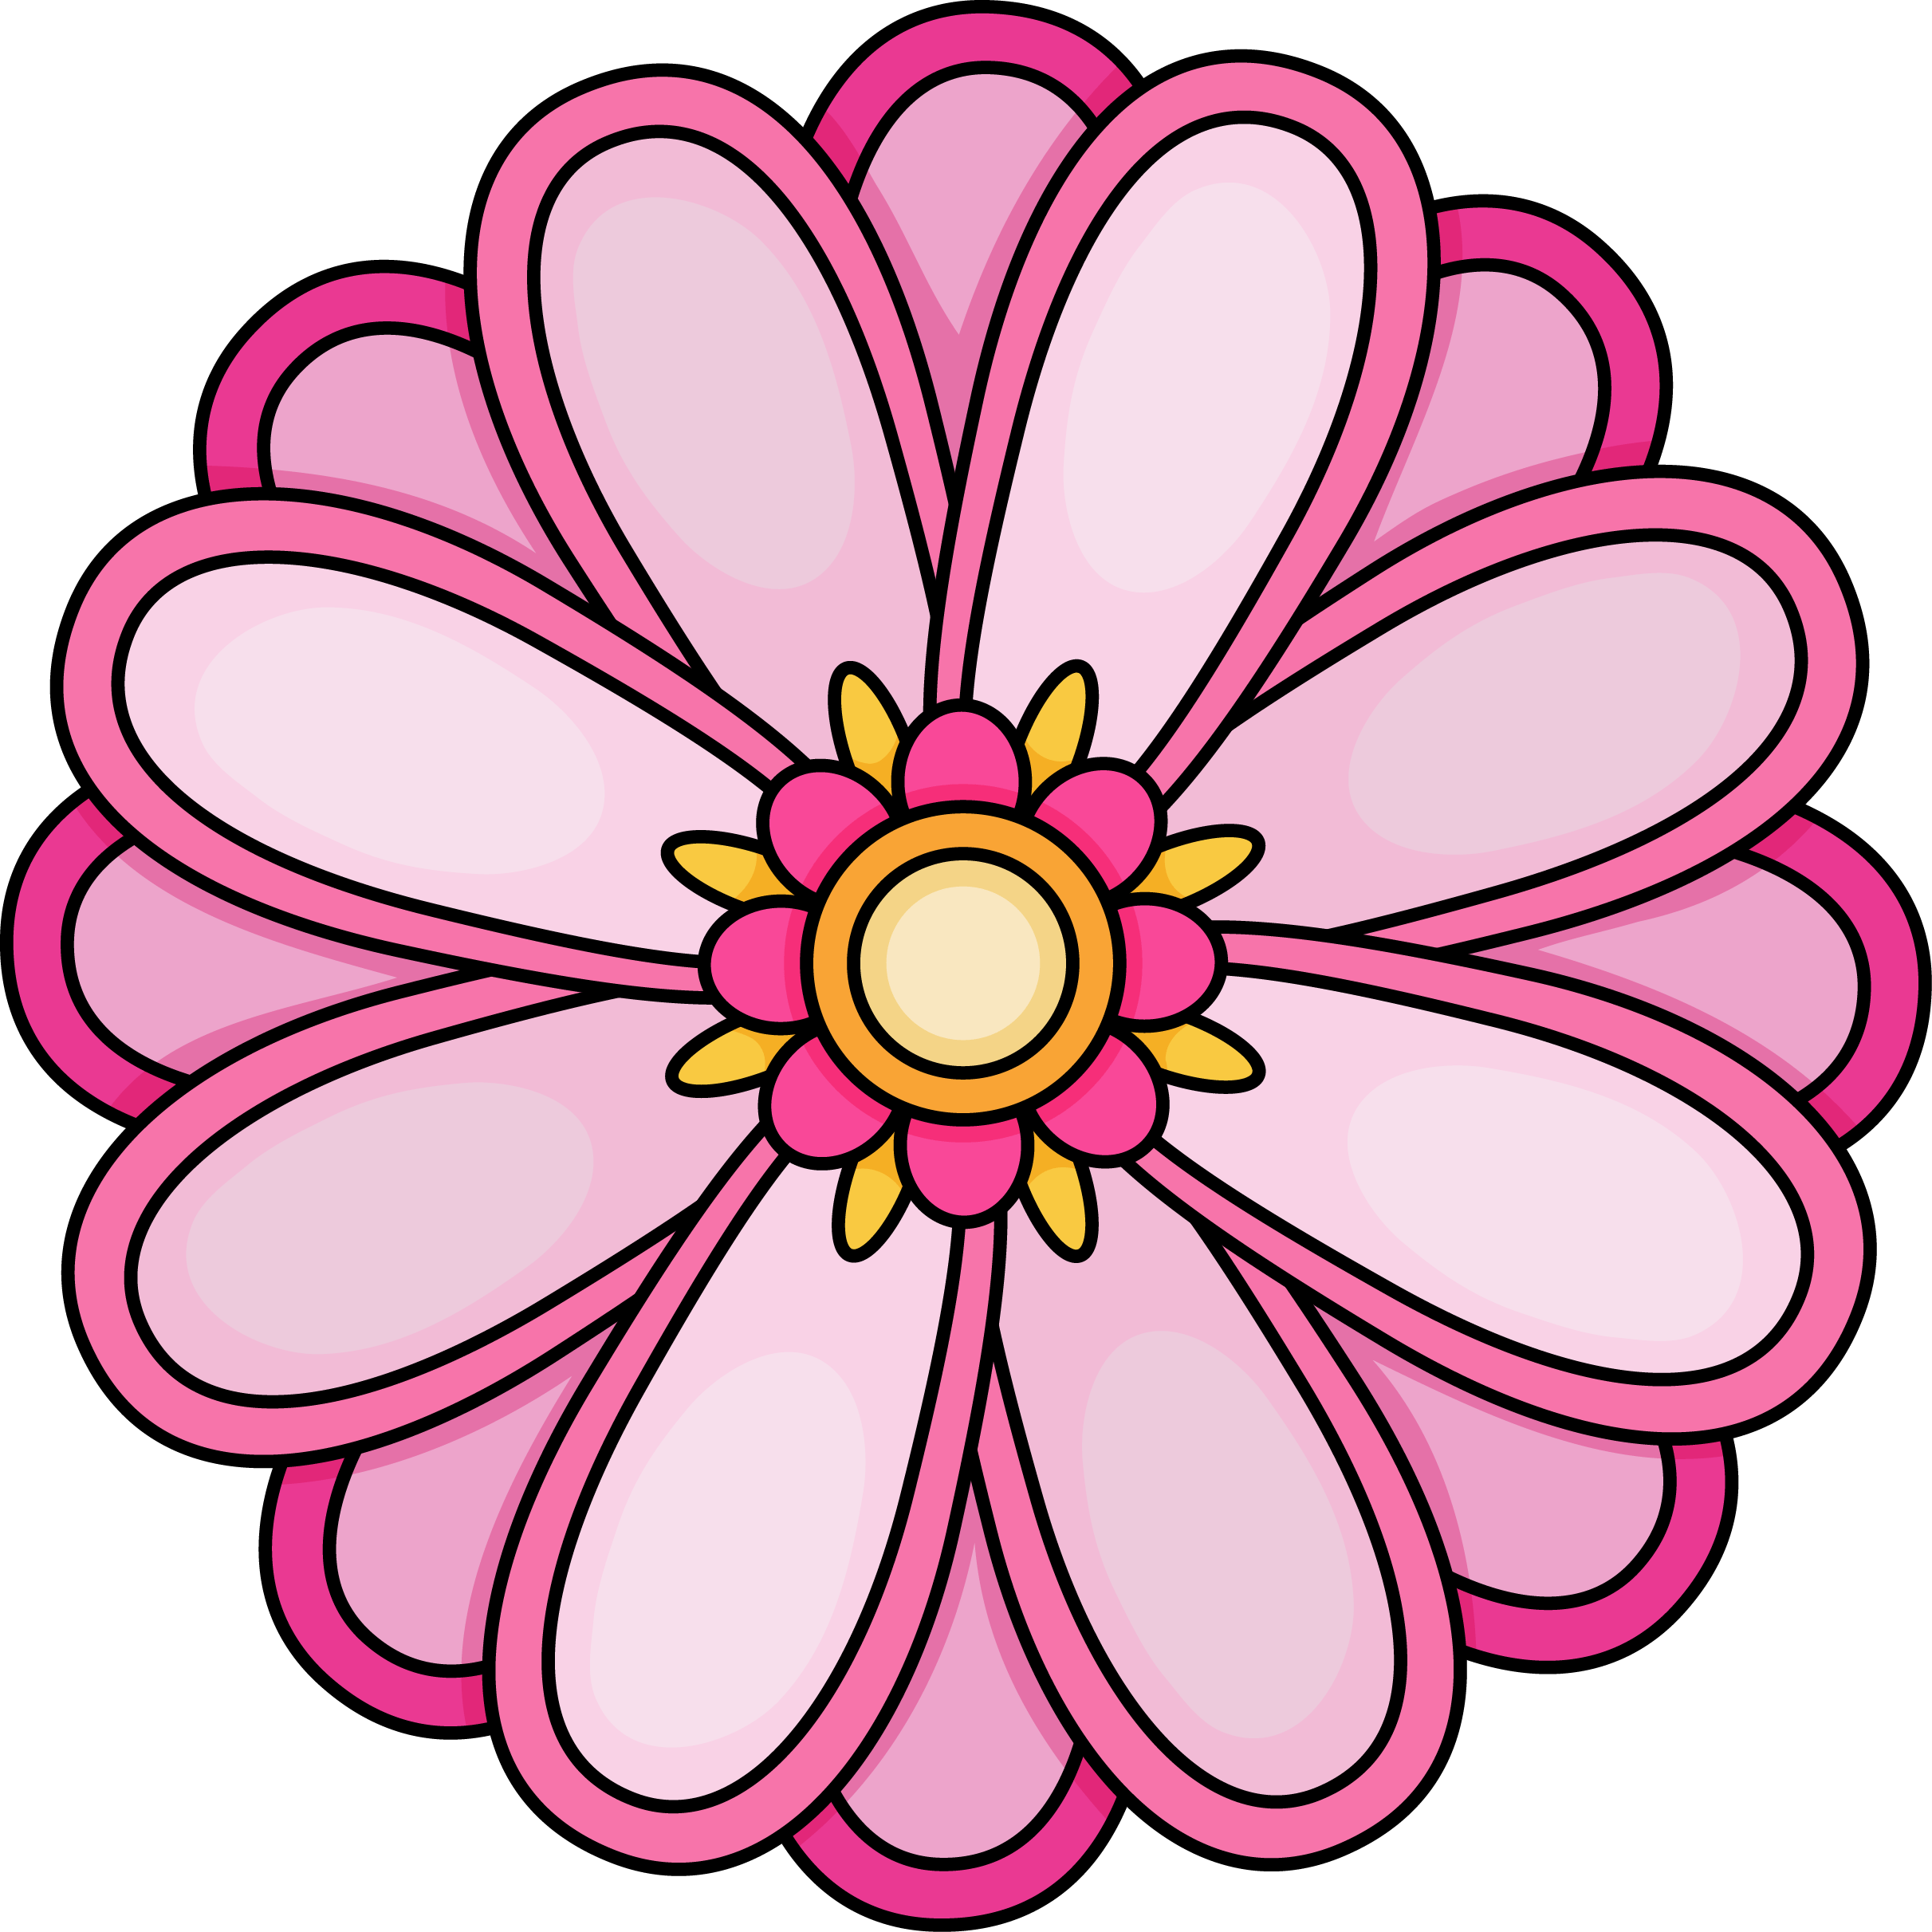 Images Of Flowers Colouring Pages At Getdrawings